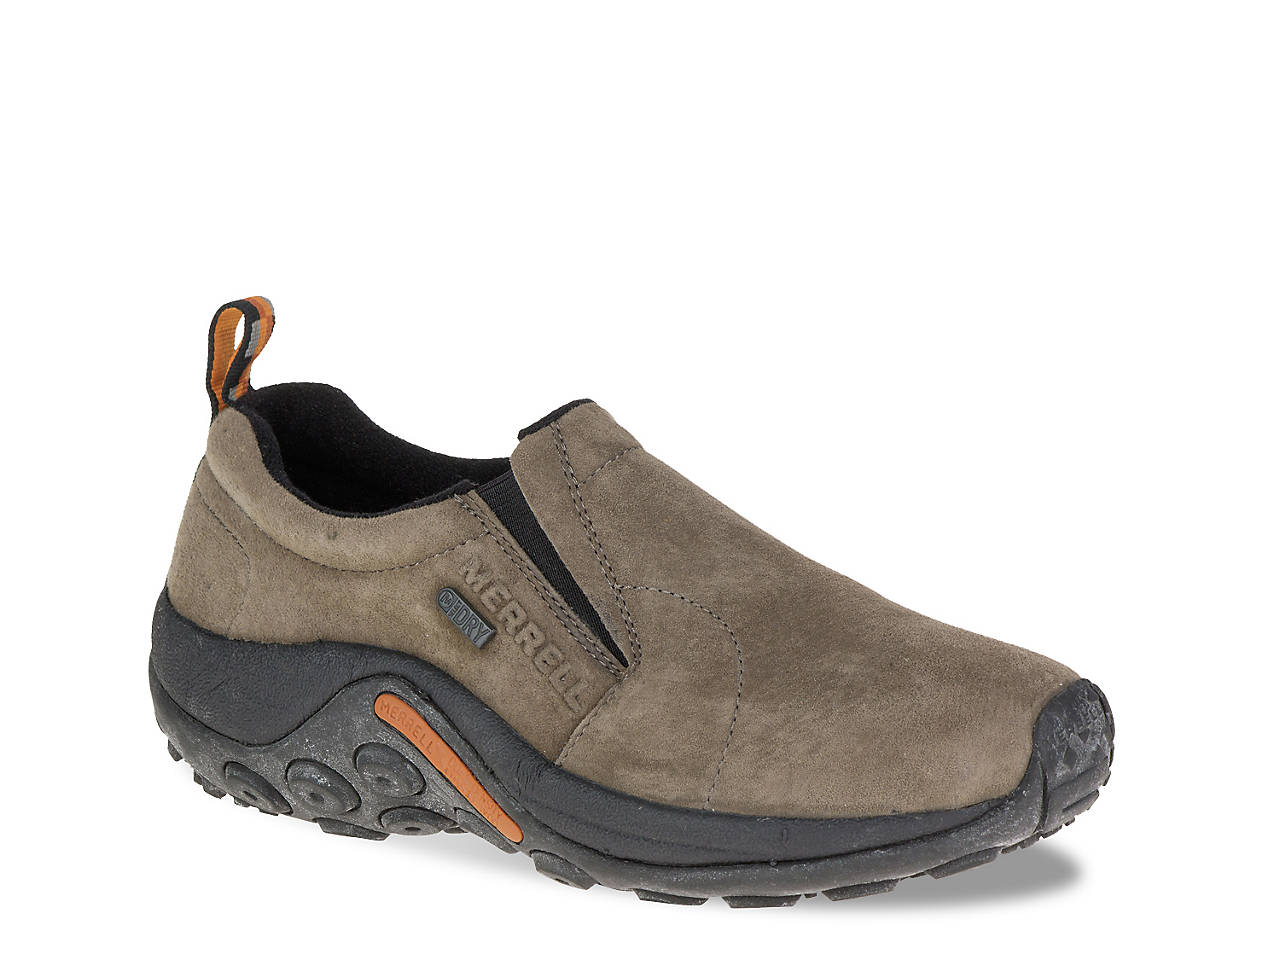 quality exclusive deals 100% high quality Jungle Moc Waterproof Slip-On Trail Shoe